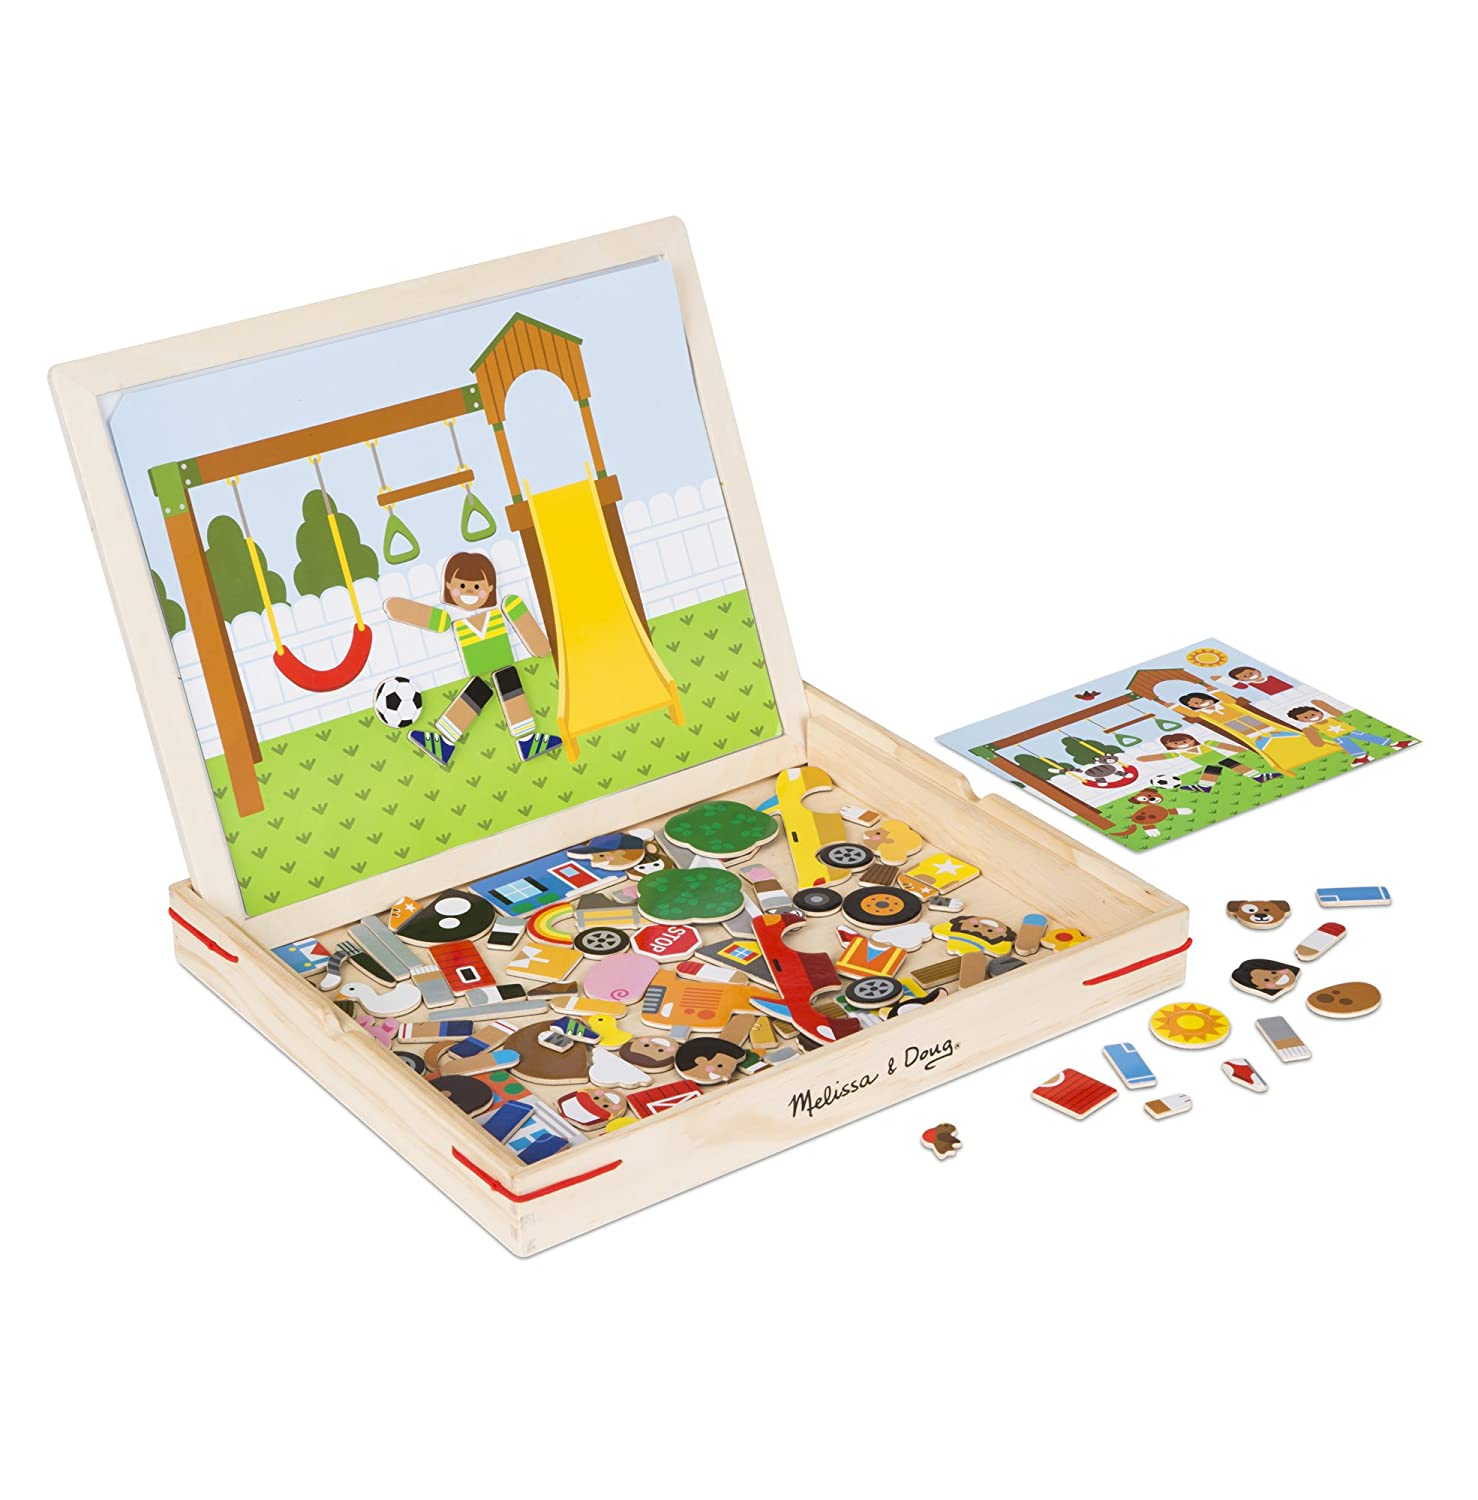 Melissa /& Doug 19918 Wooden Matching Picture Game with 119 Magnets and Scene Cards Multi-Colour